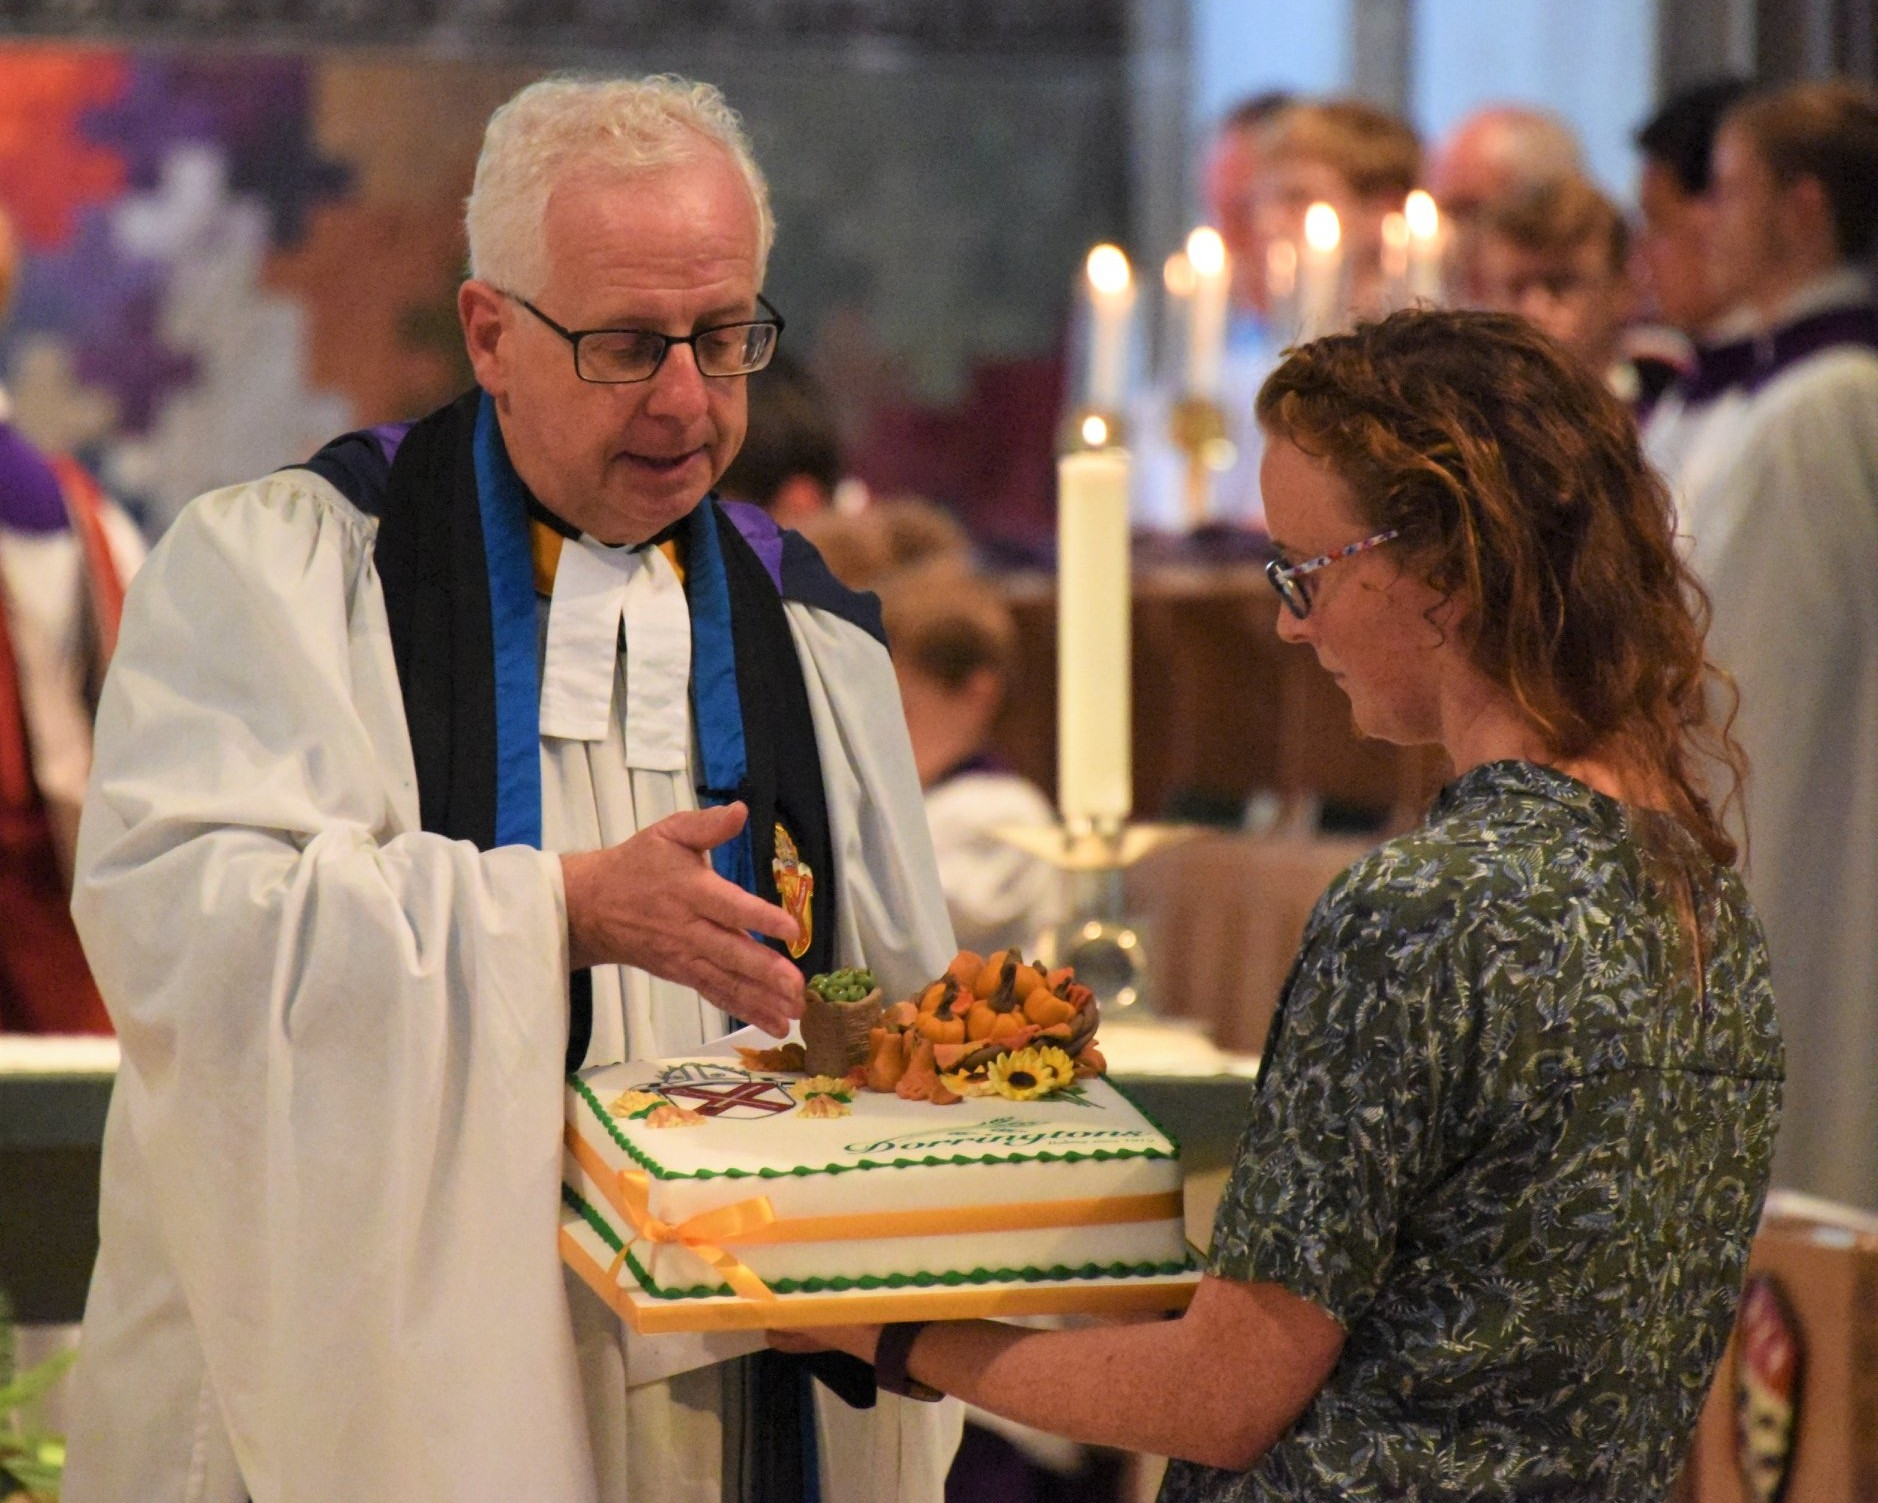 Latest News from the Chelmsford Diocese